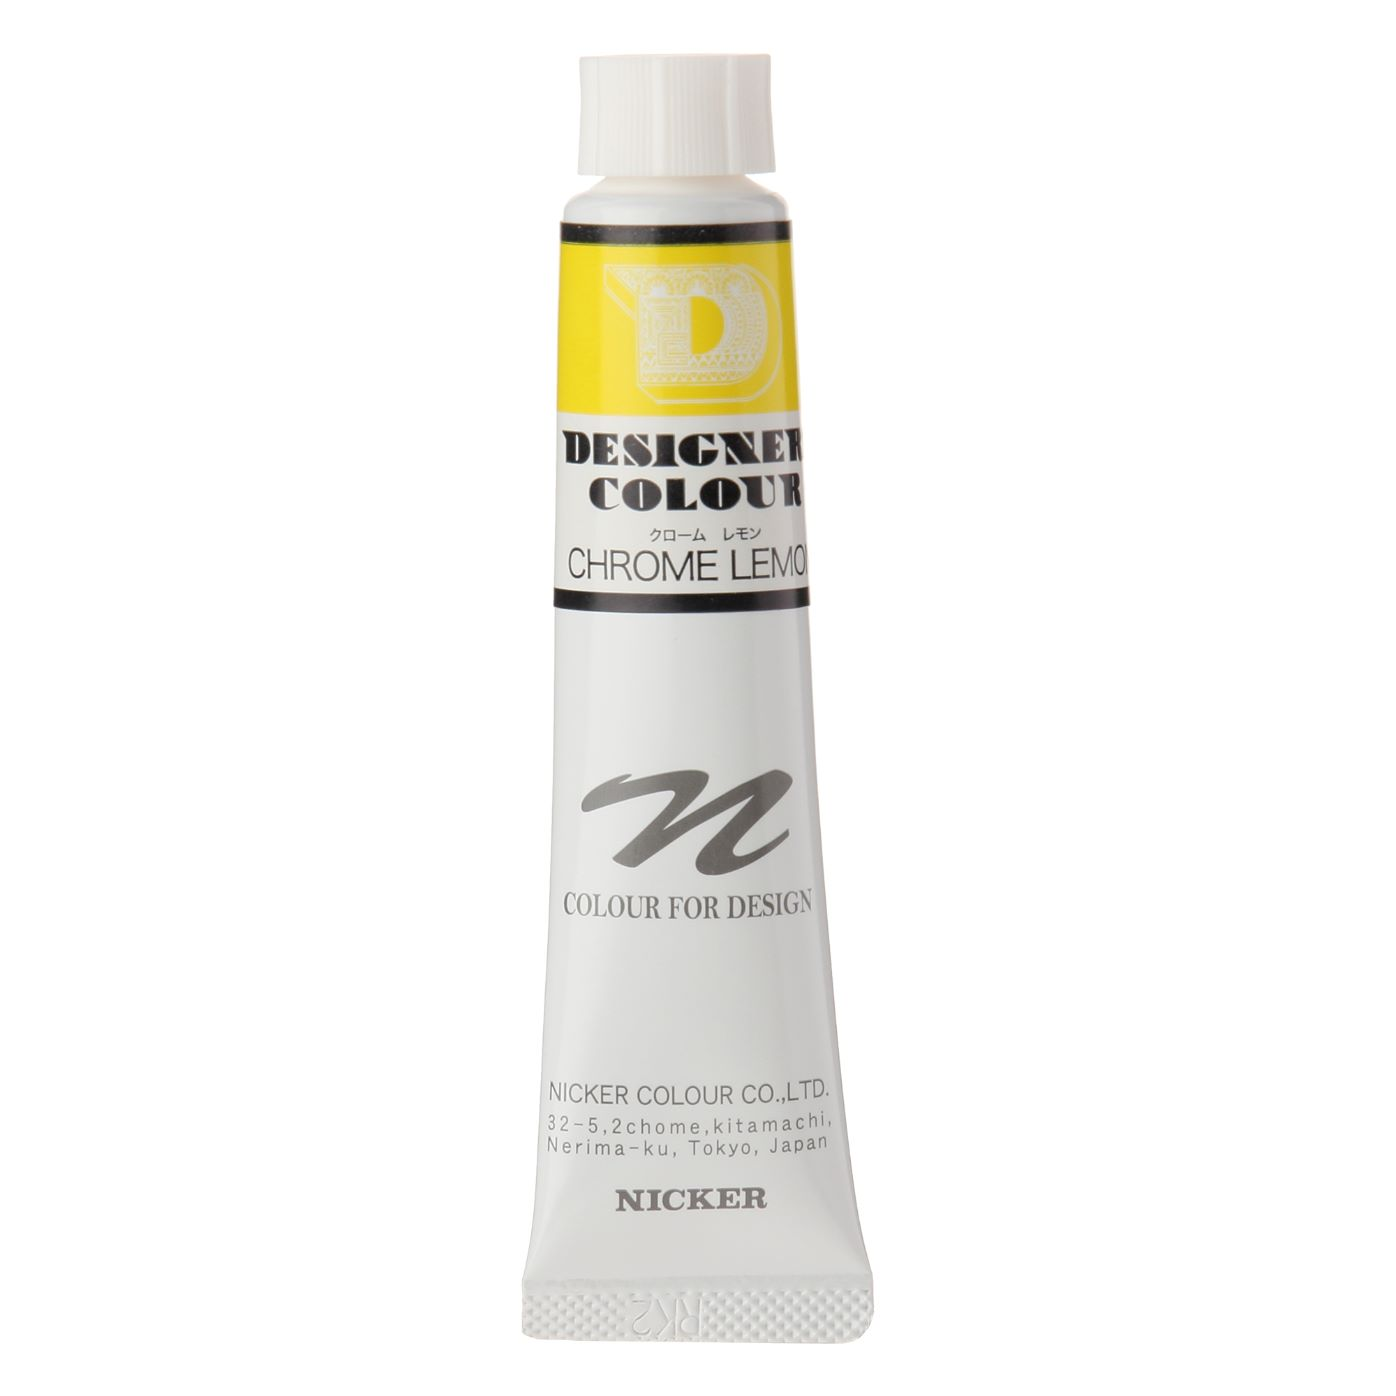 DESIGNERS COLOUR 20ml 503 CHROME LEMON